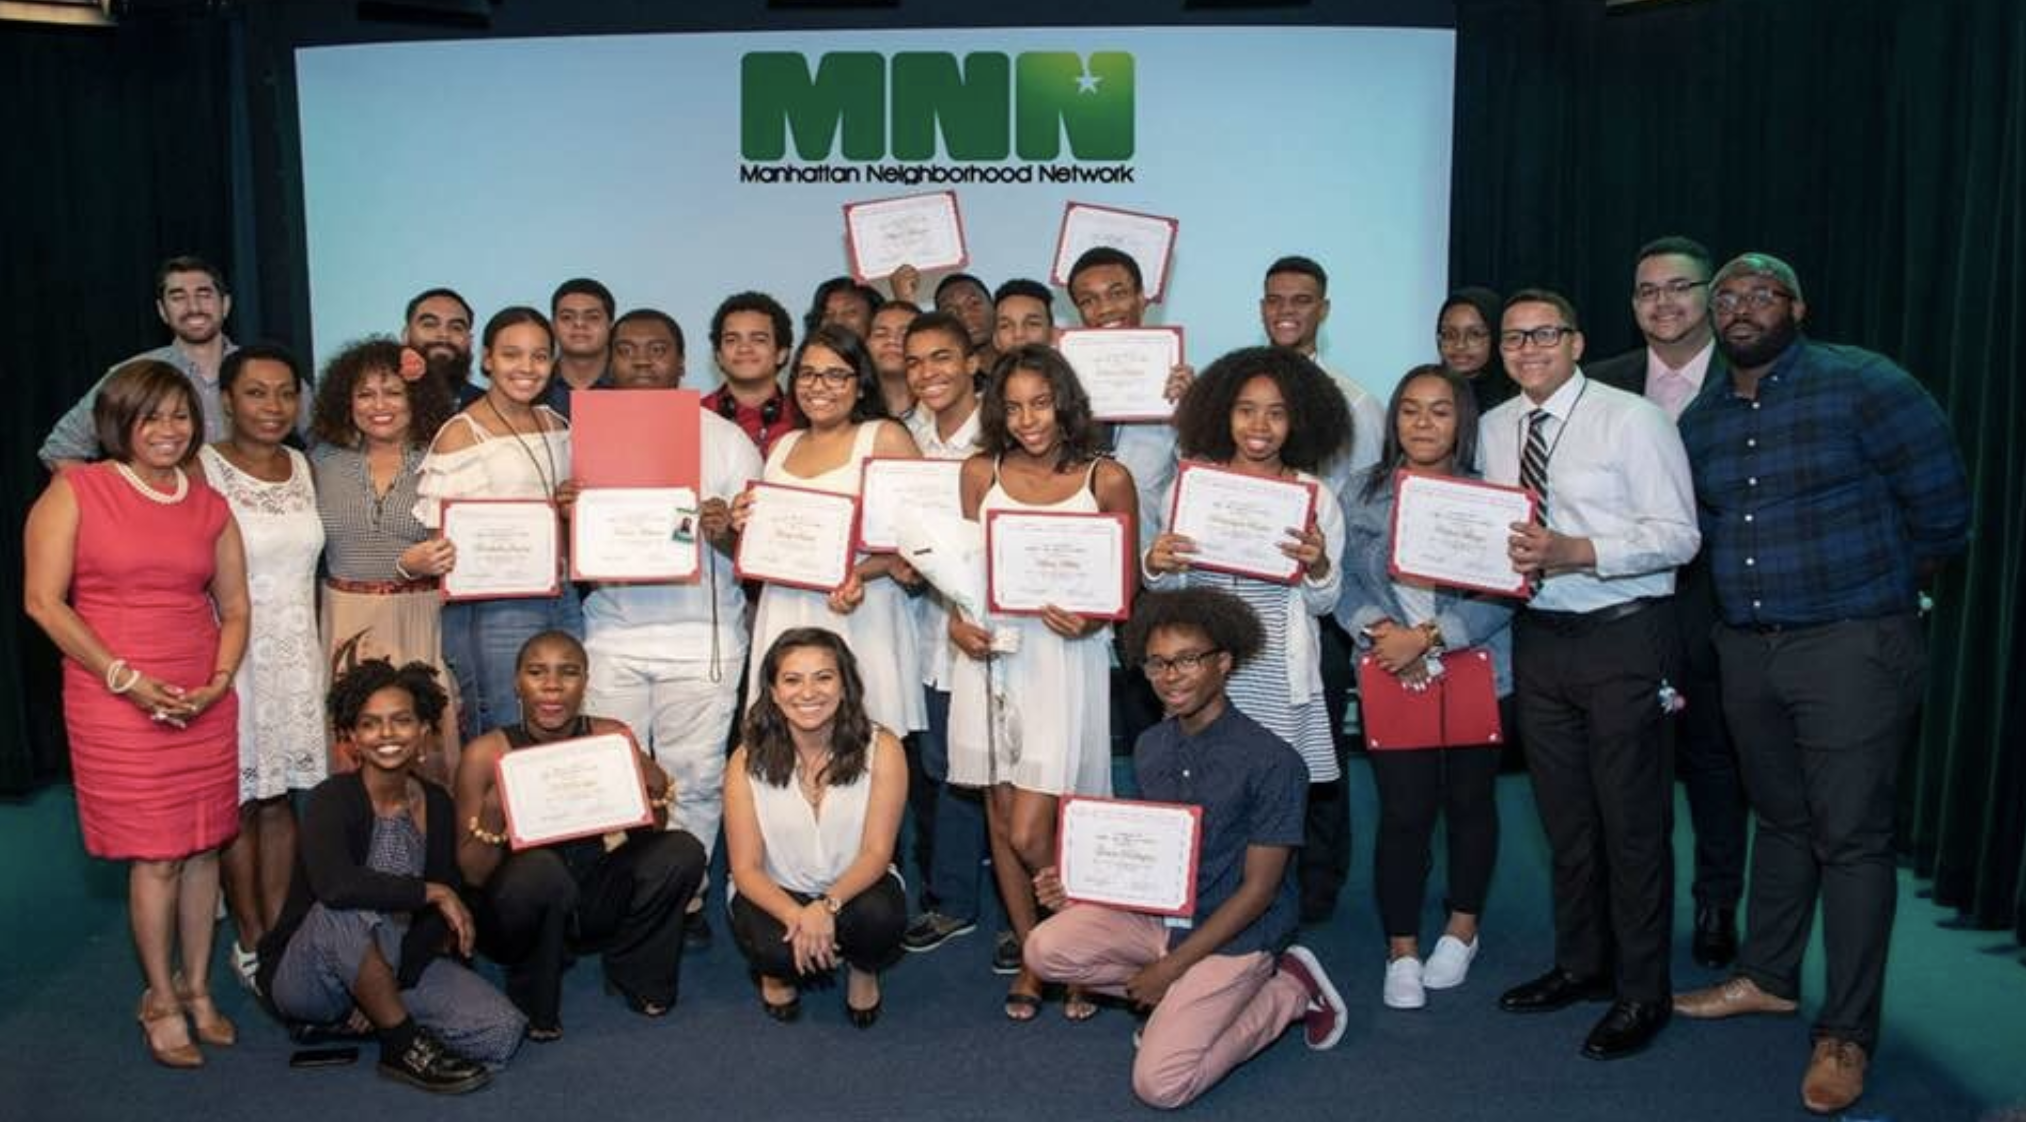 Congratulations to our young media makers who participated in Manhattan Neighborhood Network's Summer Youth Program Image